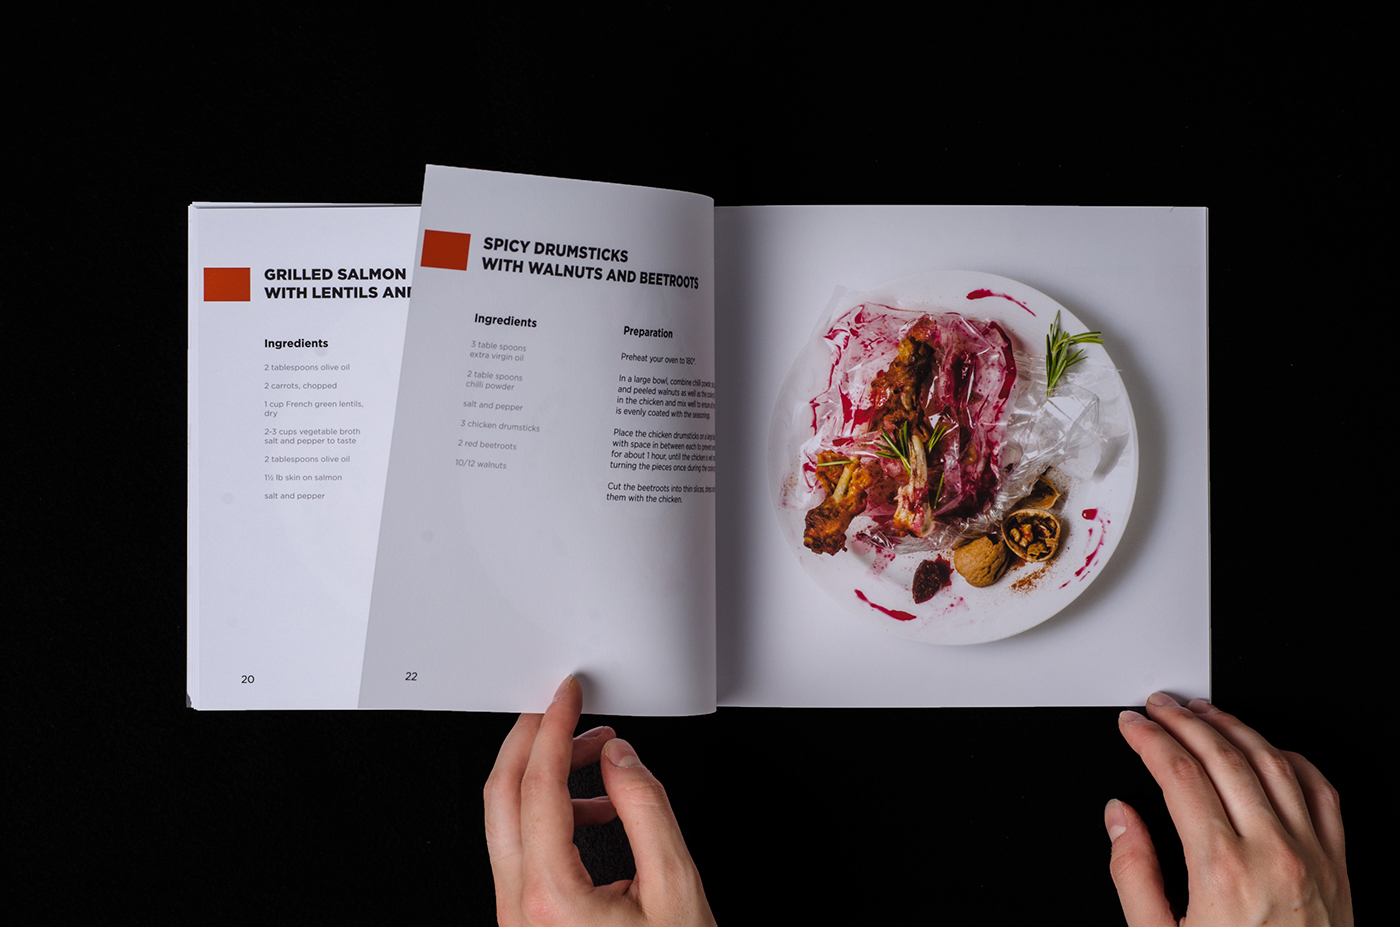 set photography styling  Cook Book food photography waste photoshop editorial design